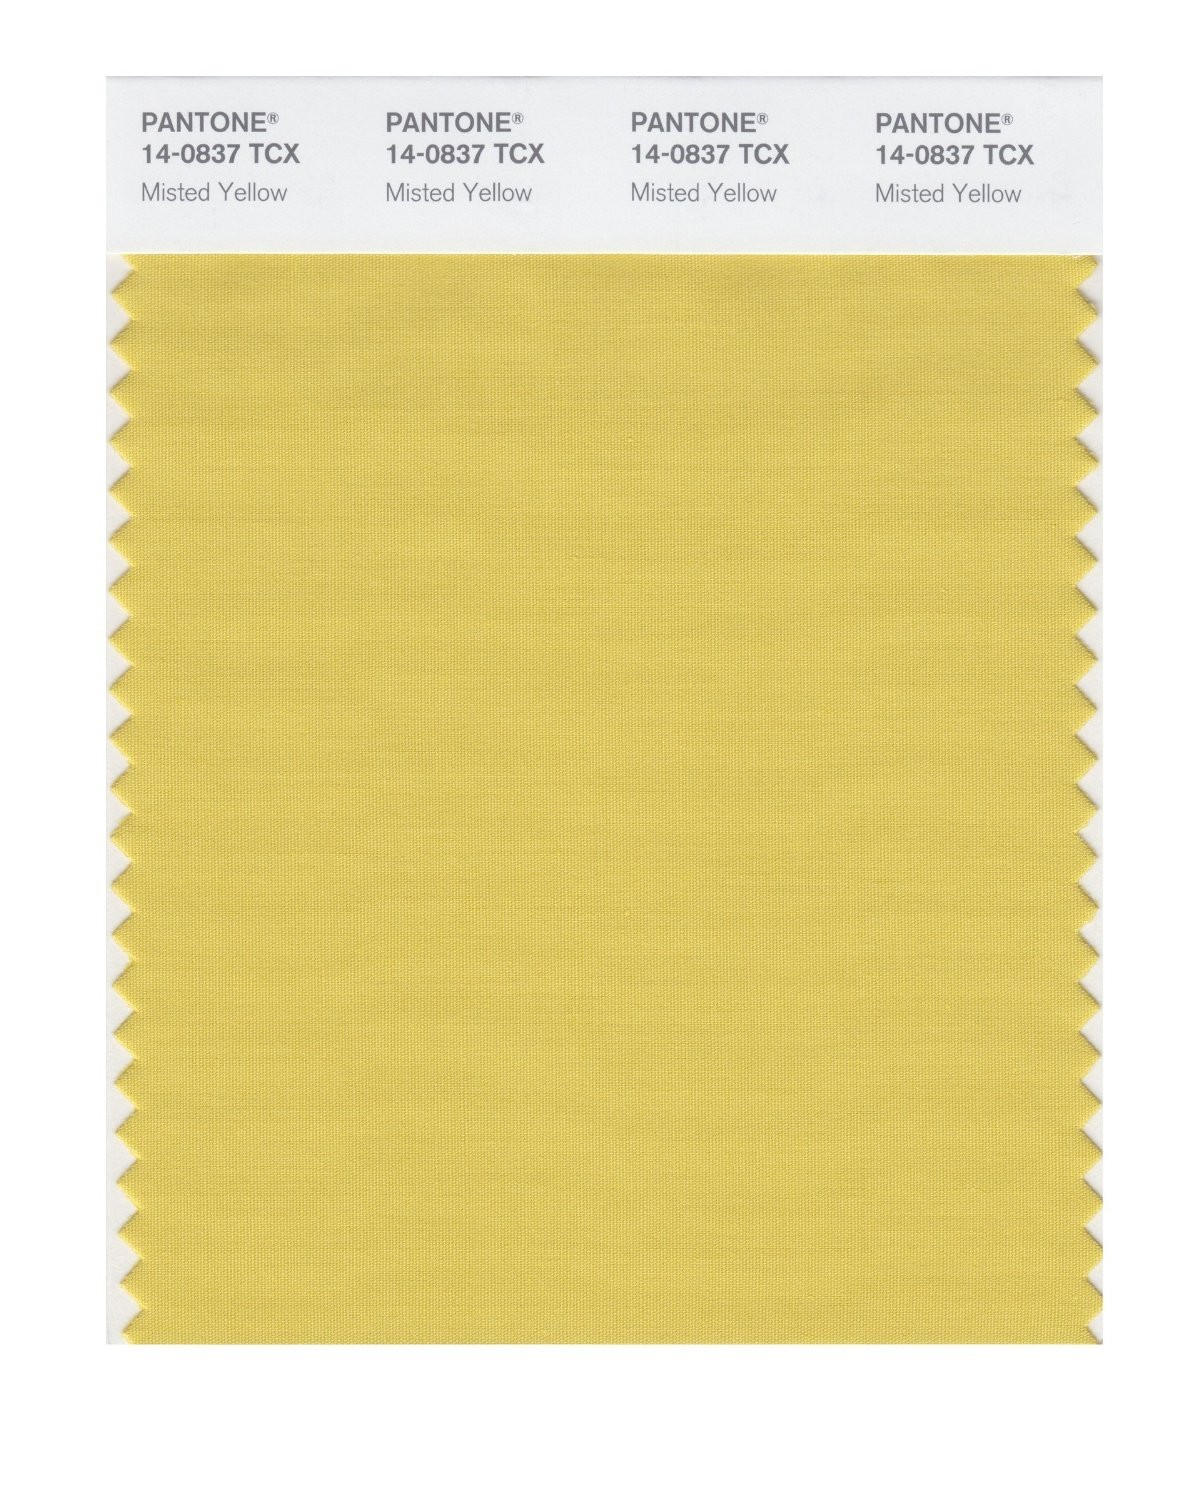 Pantone 14-0837 TCX Swatch Card Misted Yellow